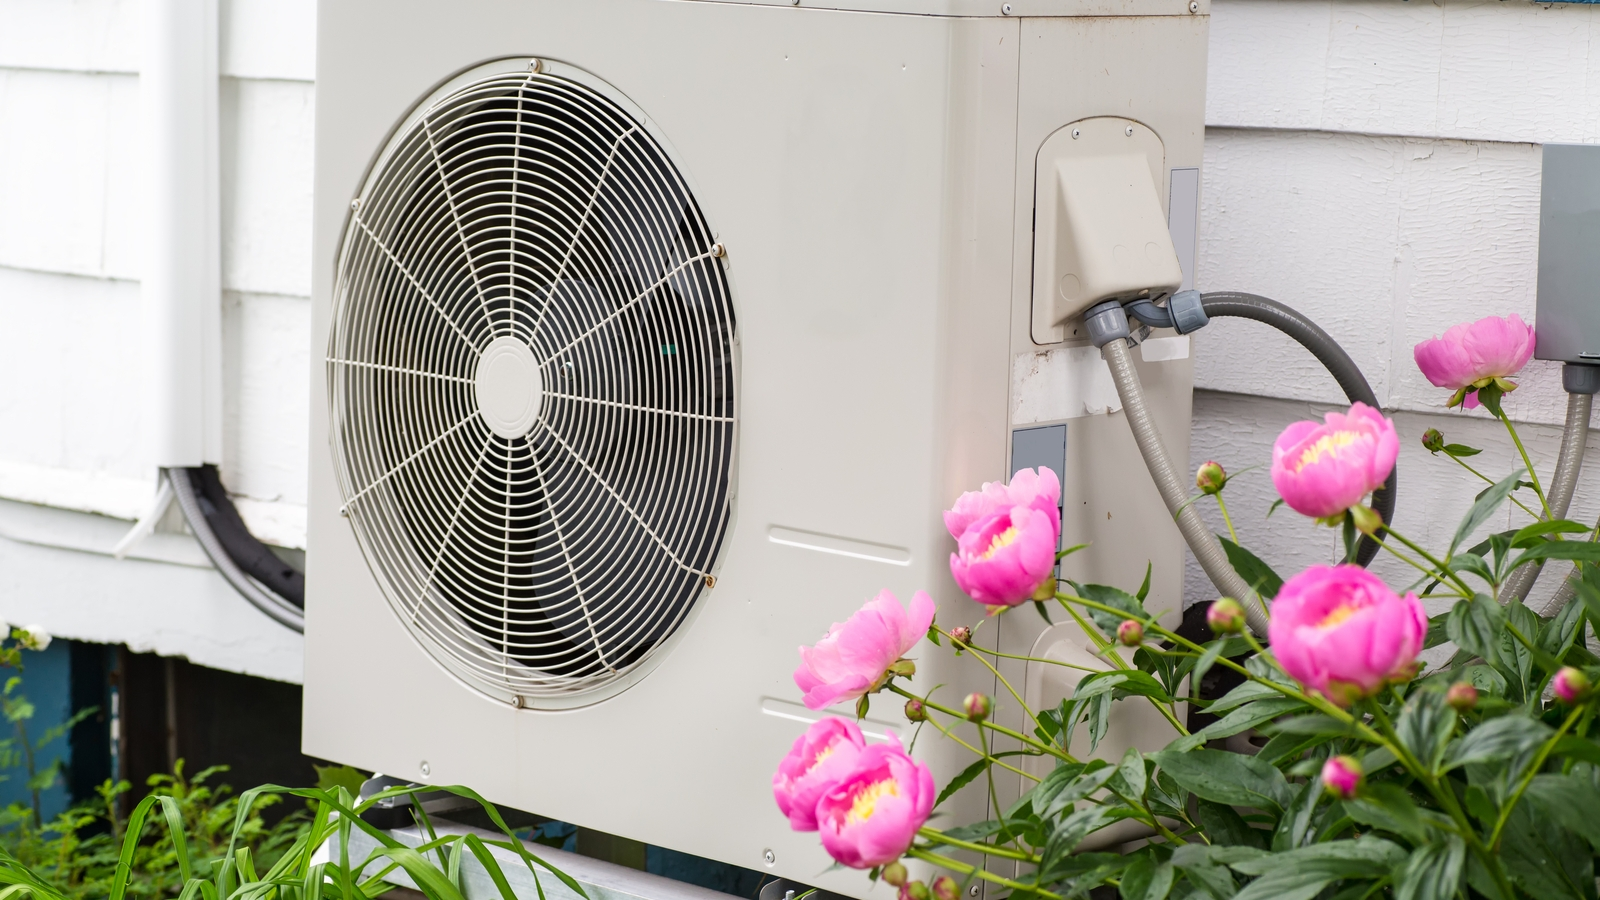 Heat Pump On Side of House Exterior Next to Pink Flowers